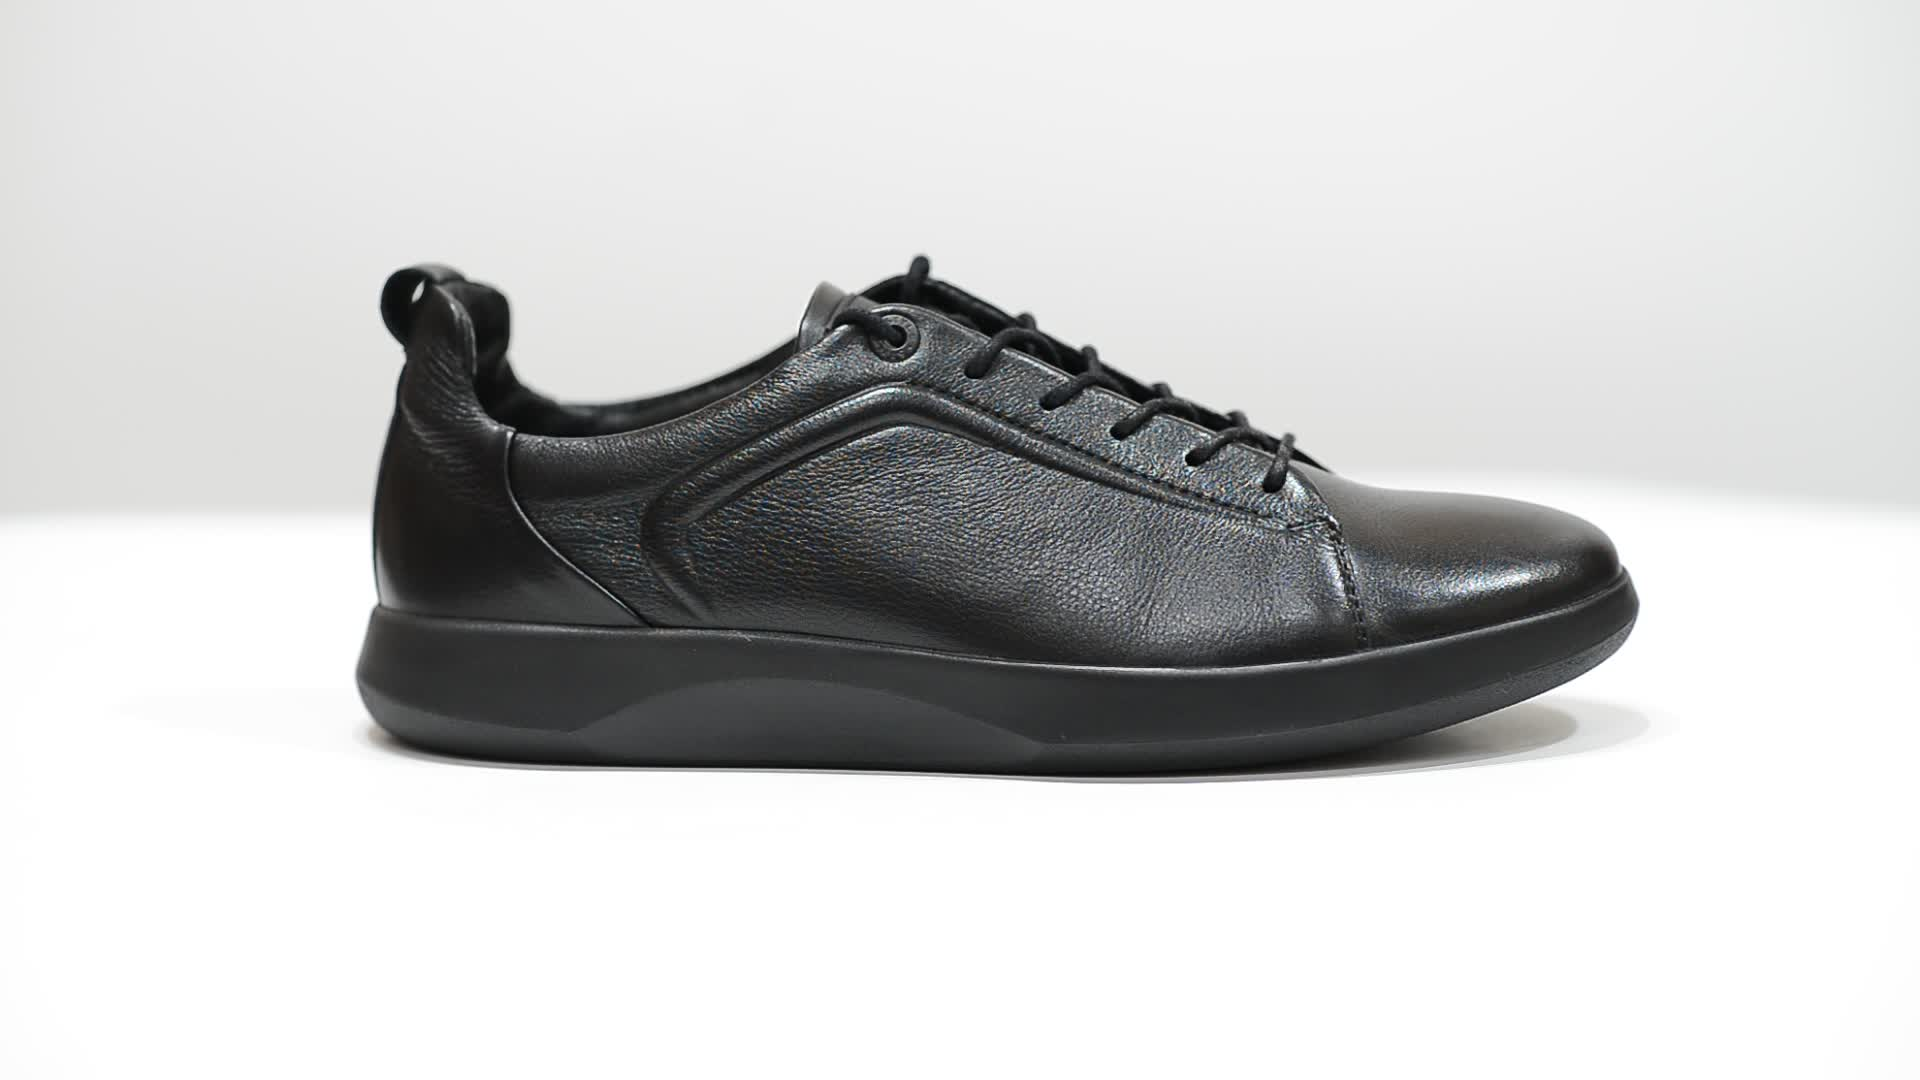 Men's black leather sneakers - V366chp